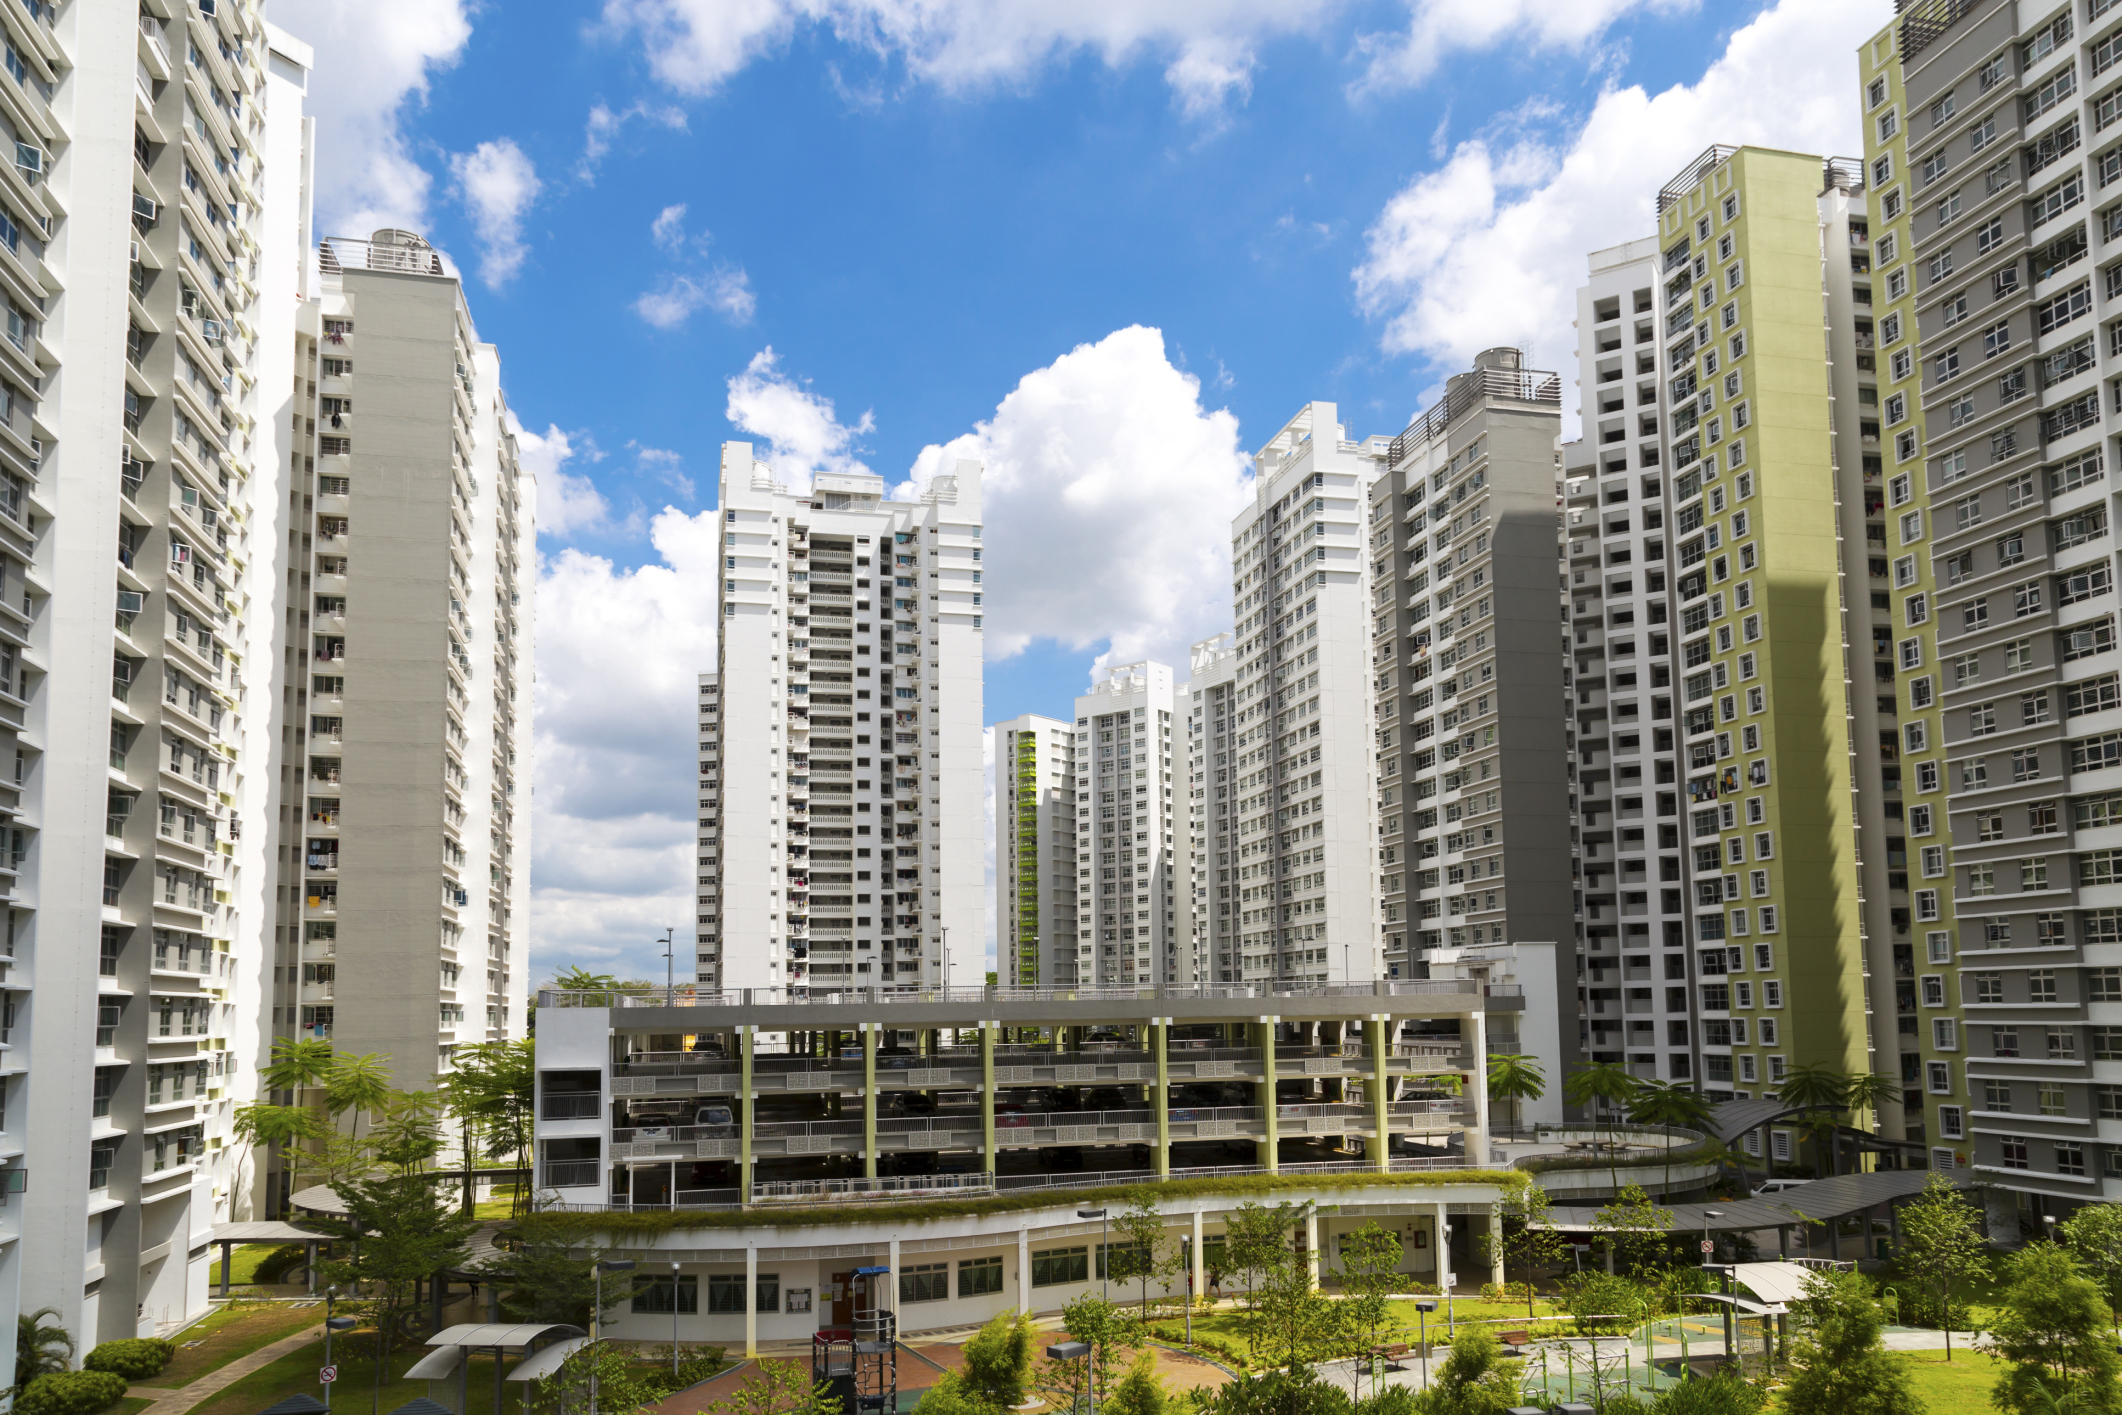 Construction details of residential buildings you must know